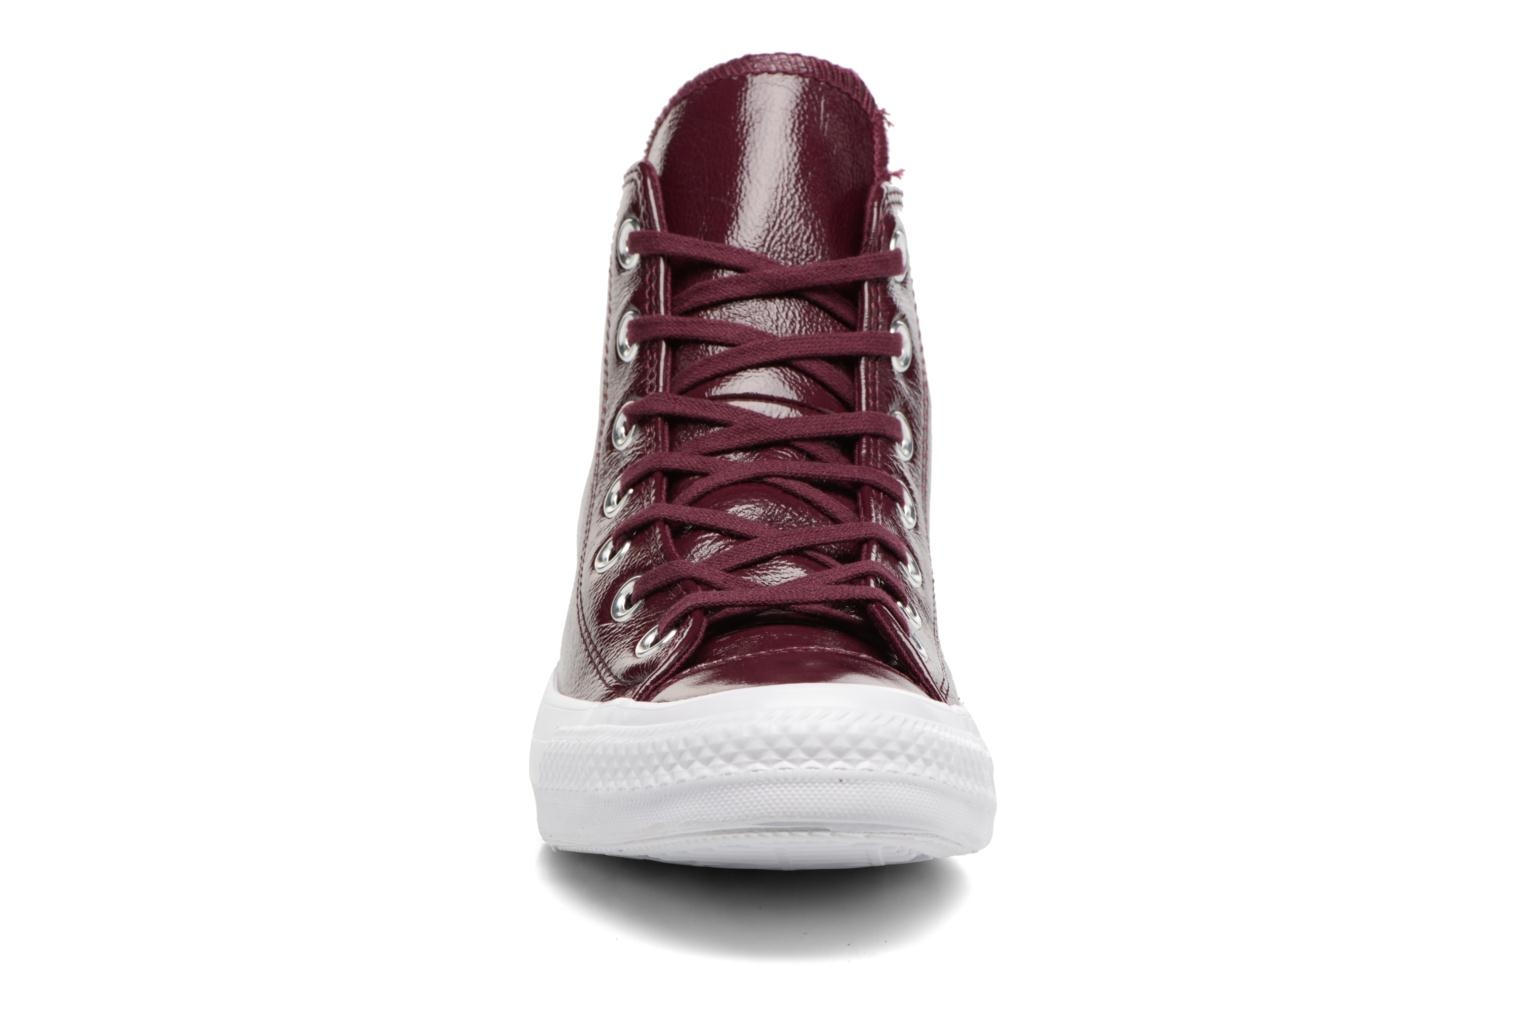 Sneakers Converse Chuck Taylor All Star Crinkled Patent Leather Hi Bordeaux model